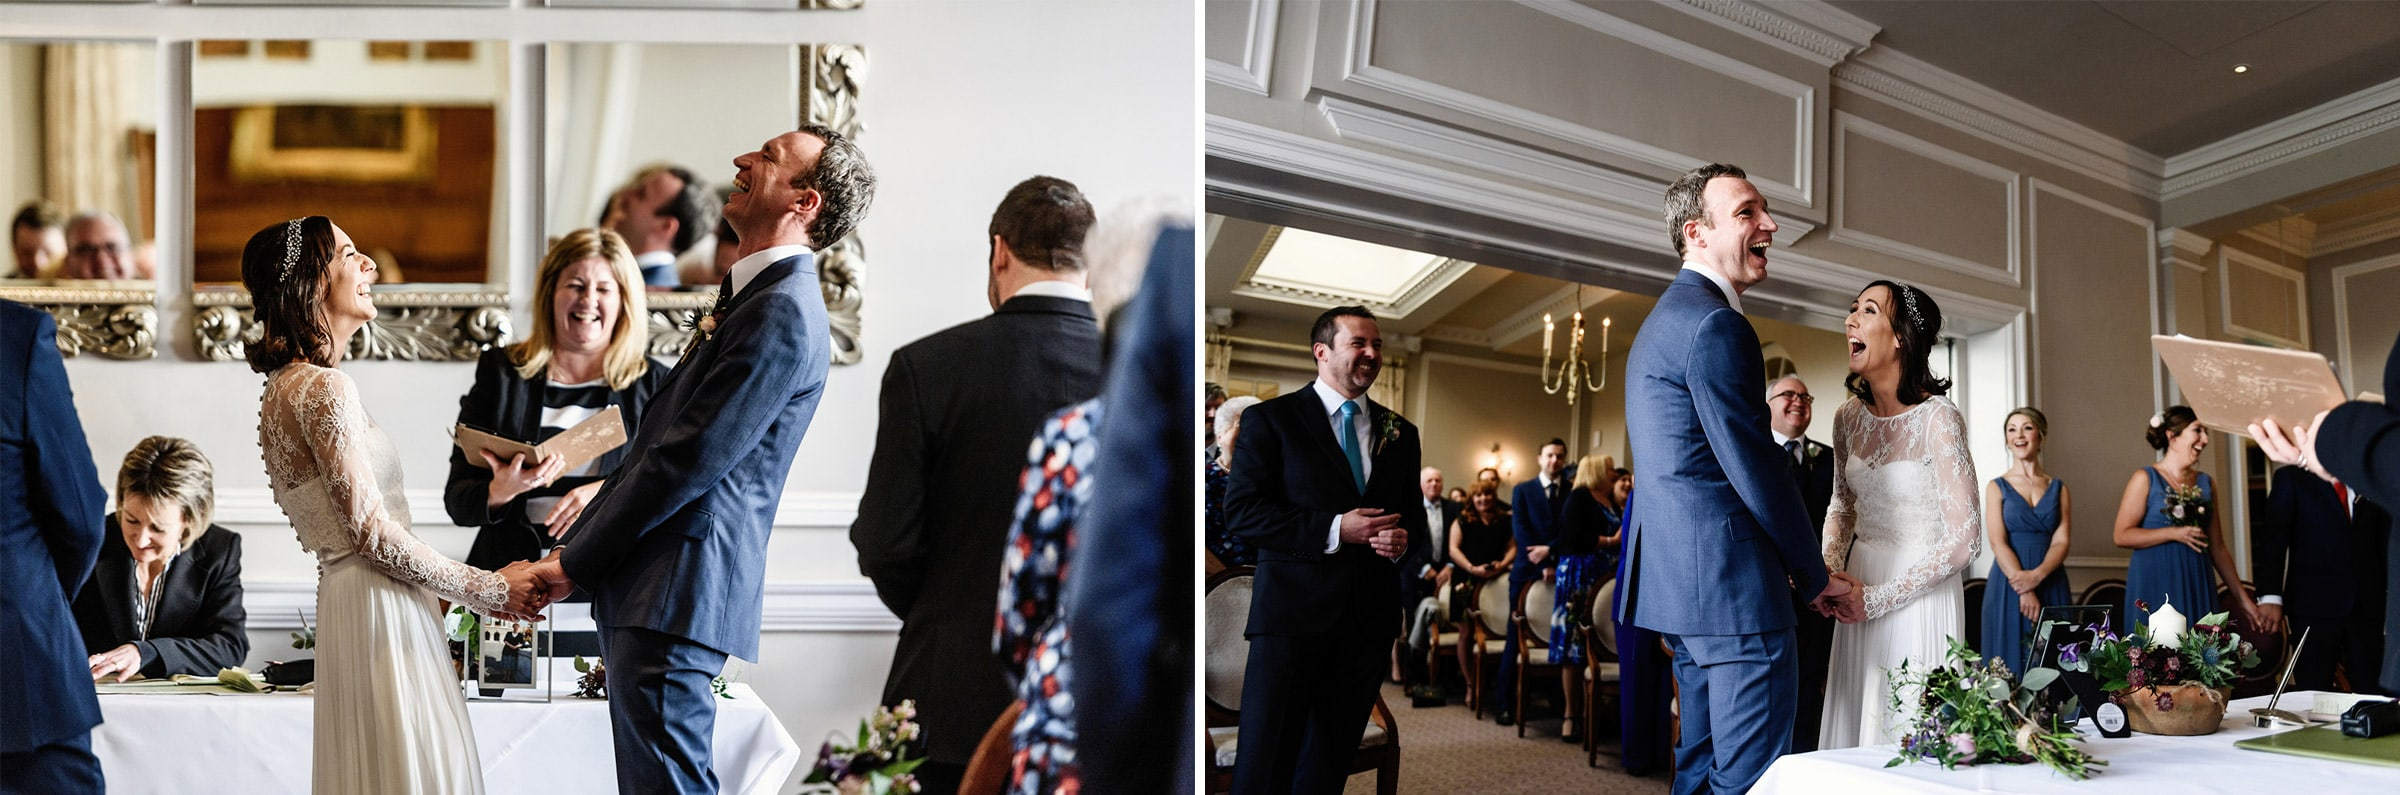 Side by side images of same moment during wedding ceremony from two different angles